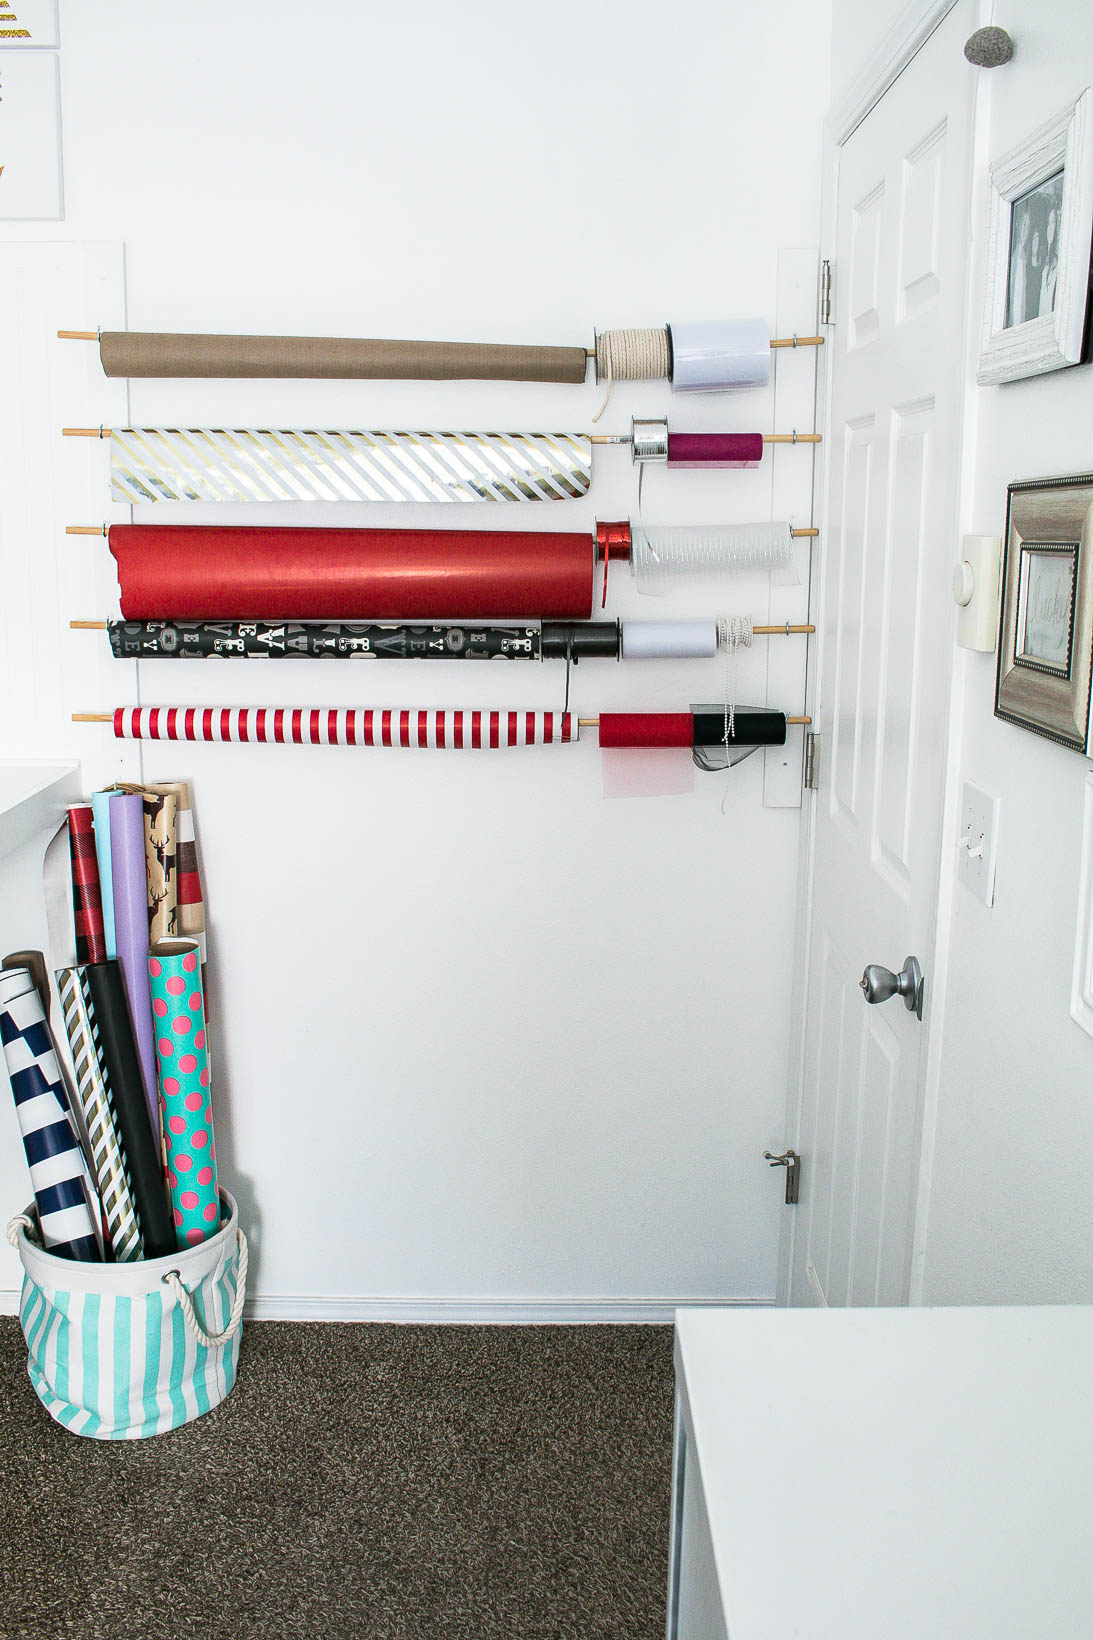 Wrapping paper gift wrapping station in Organized white craft room